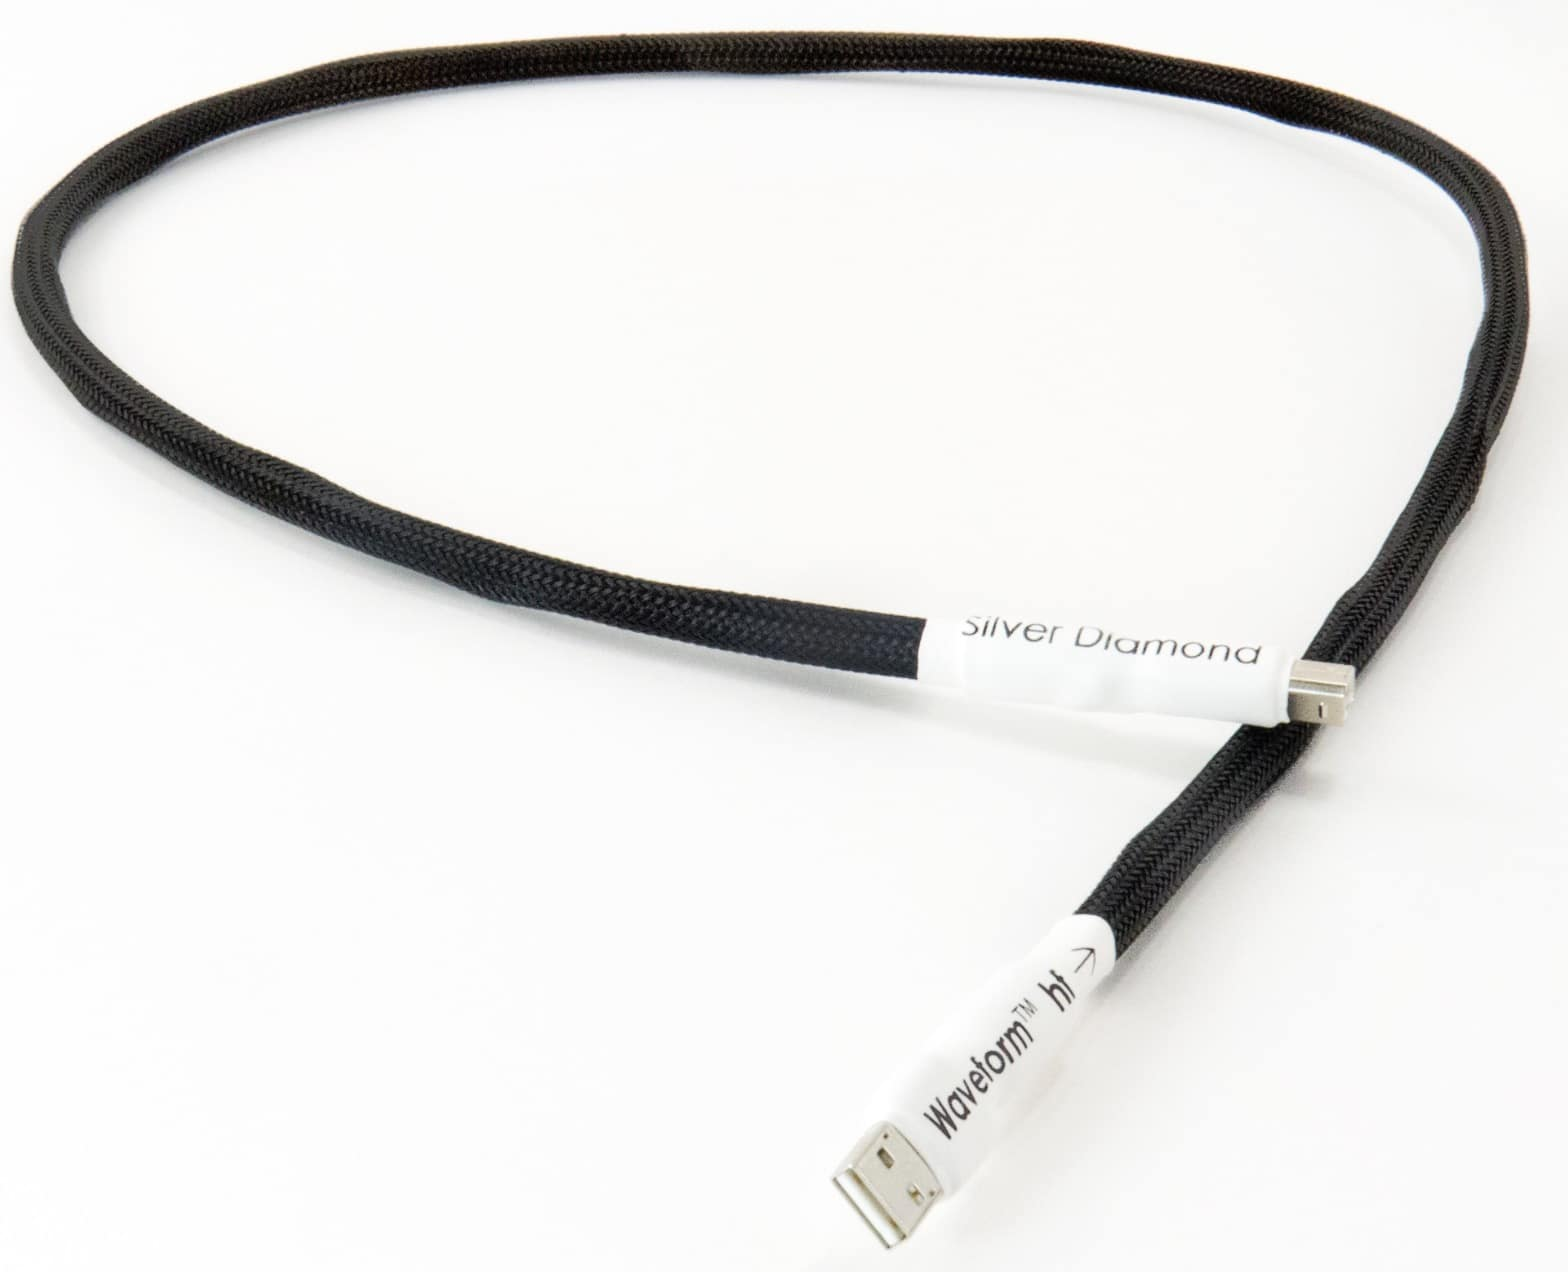 Silver Diamond Waveform hf USB Cable from Tellurium Q